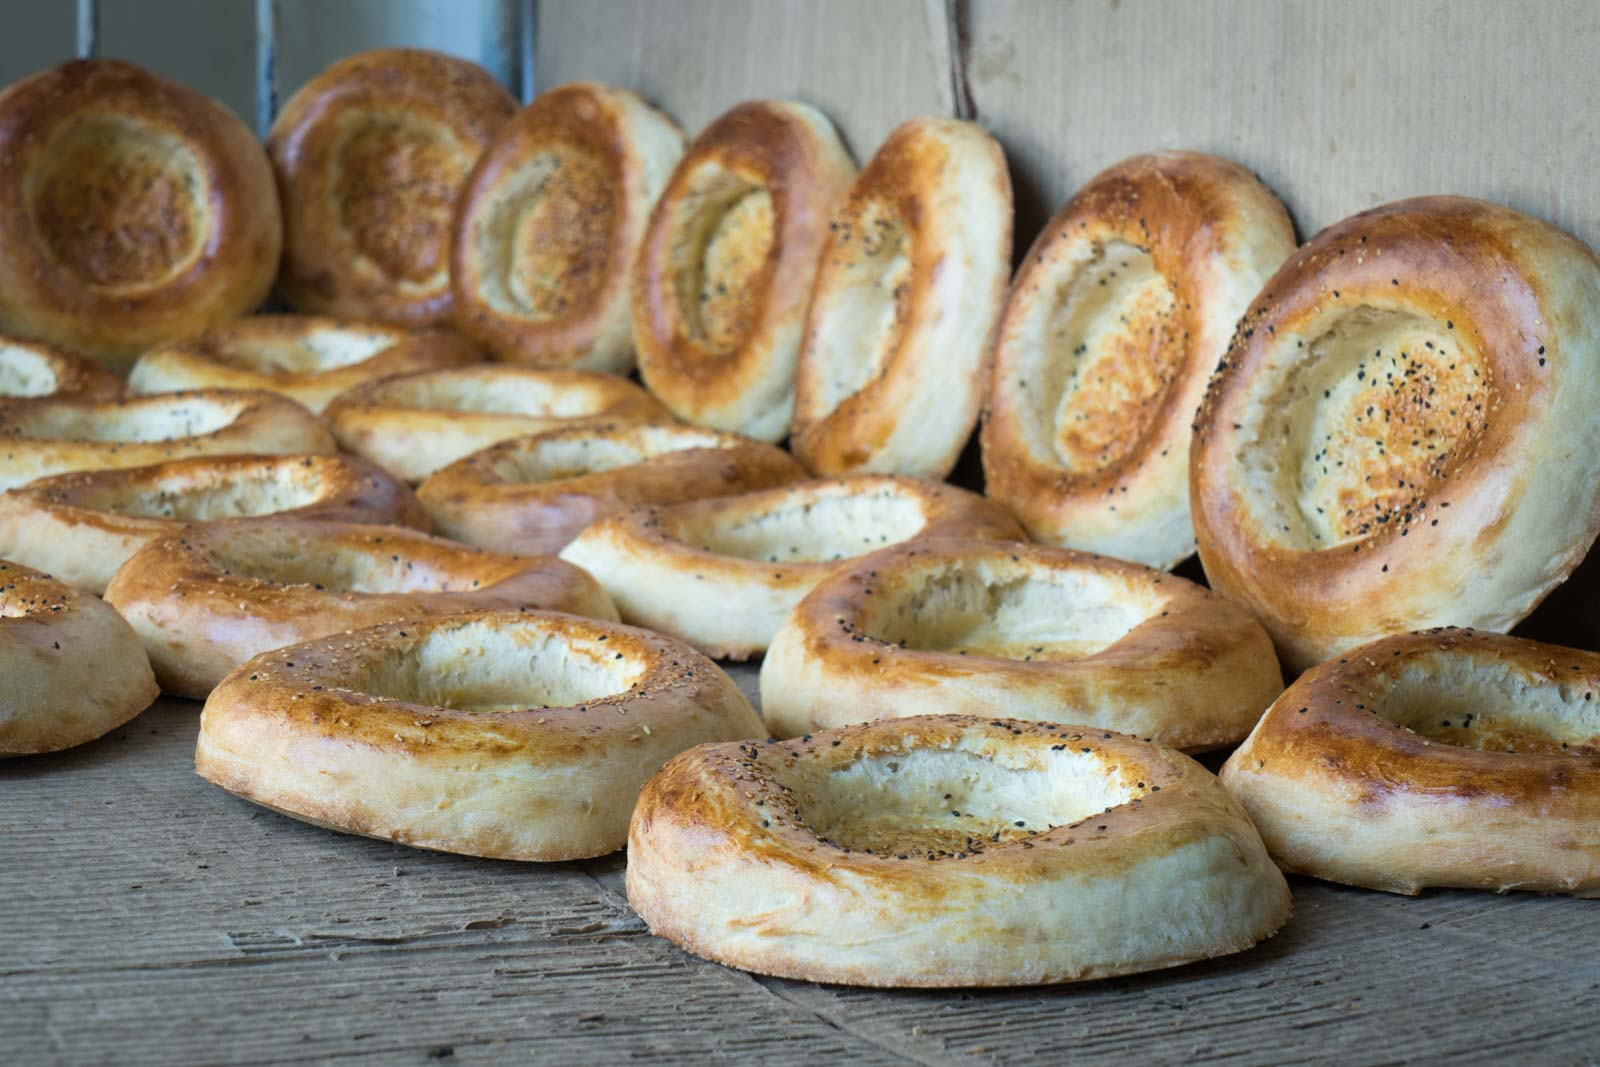 Food tours in Osh, Kyrgyzstan